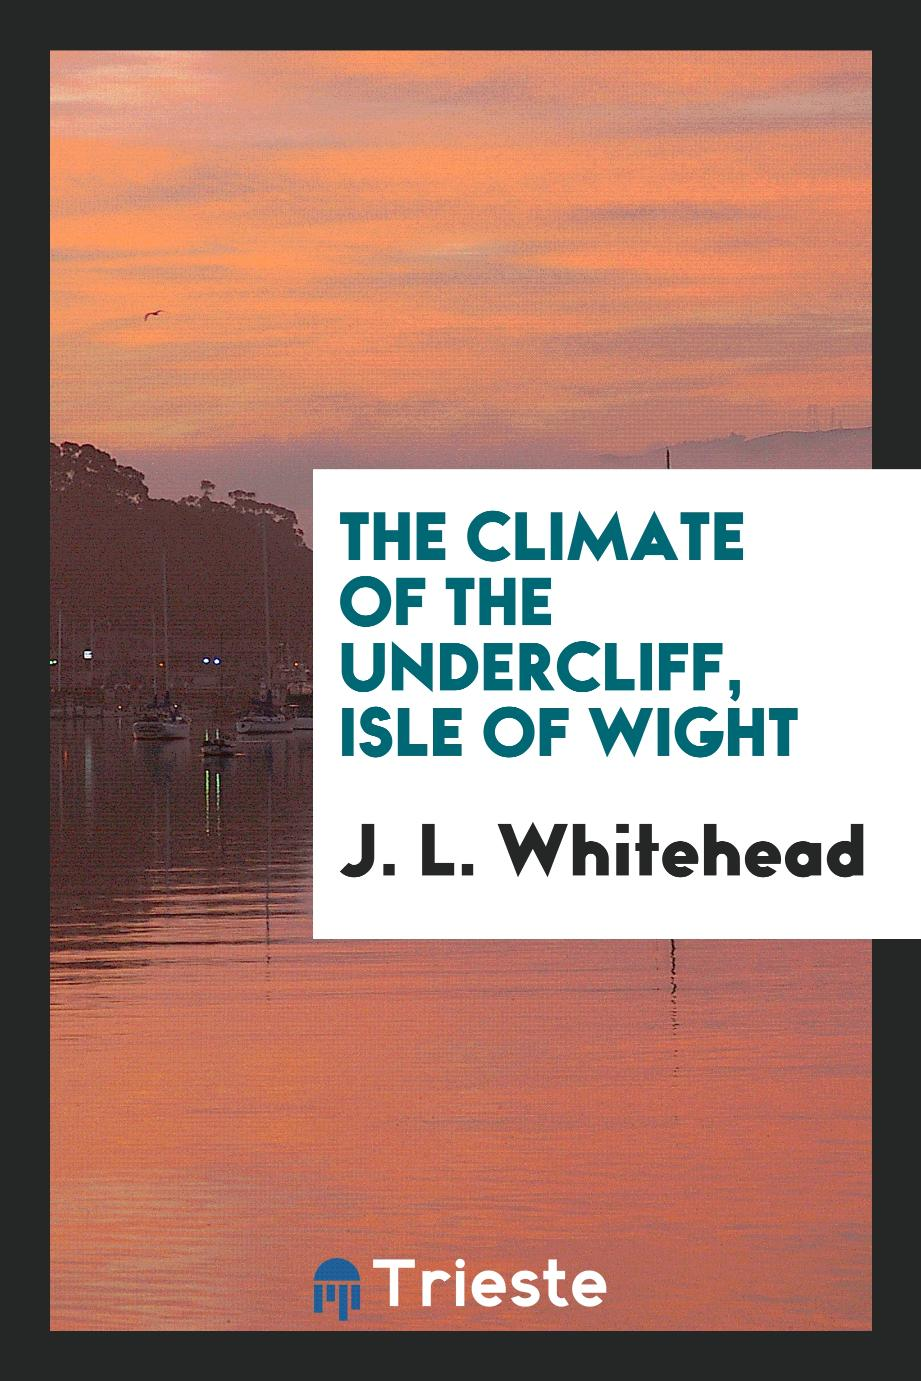 The climate of the Undercliff, Isle of Wight